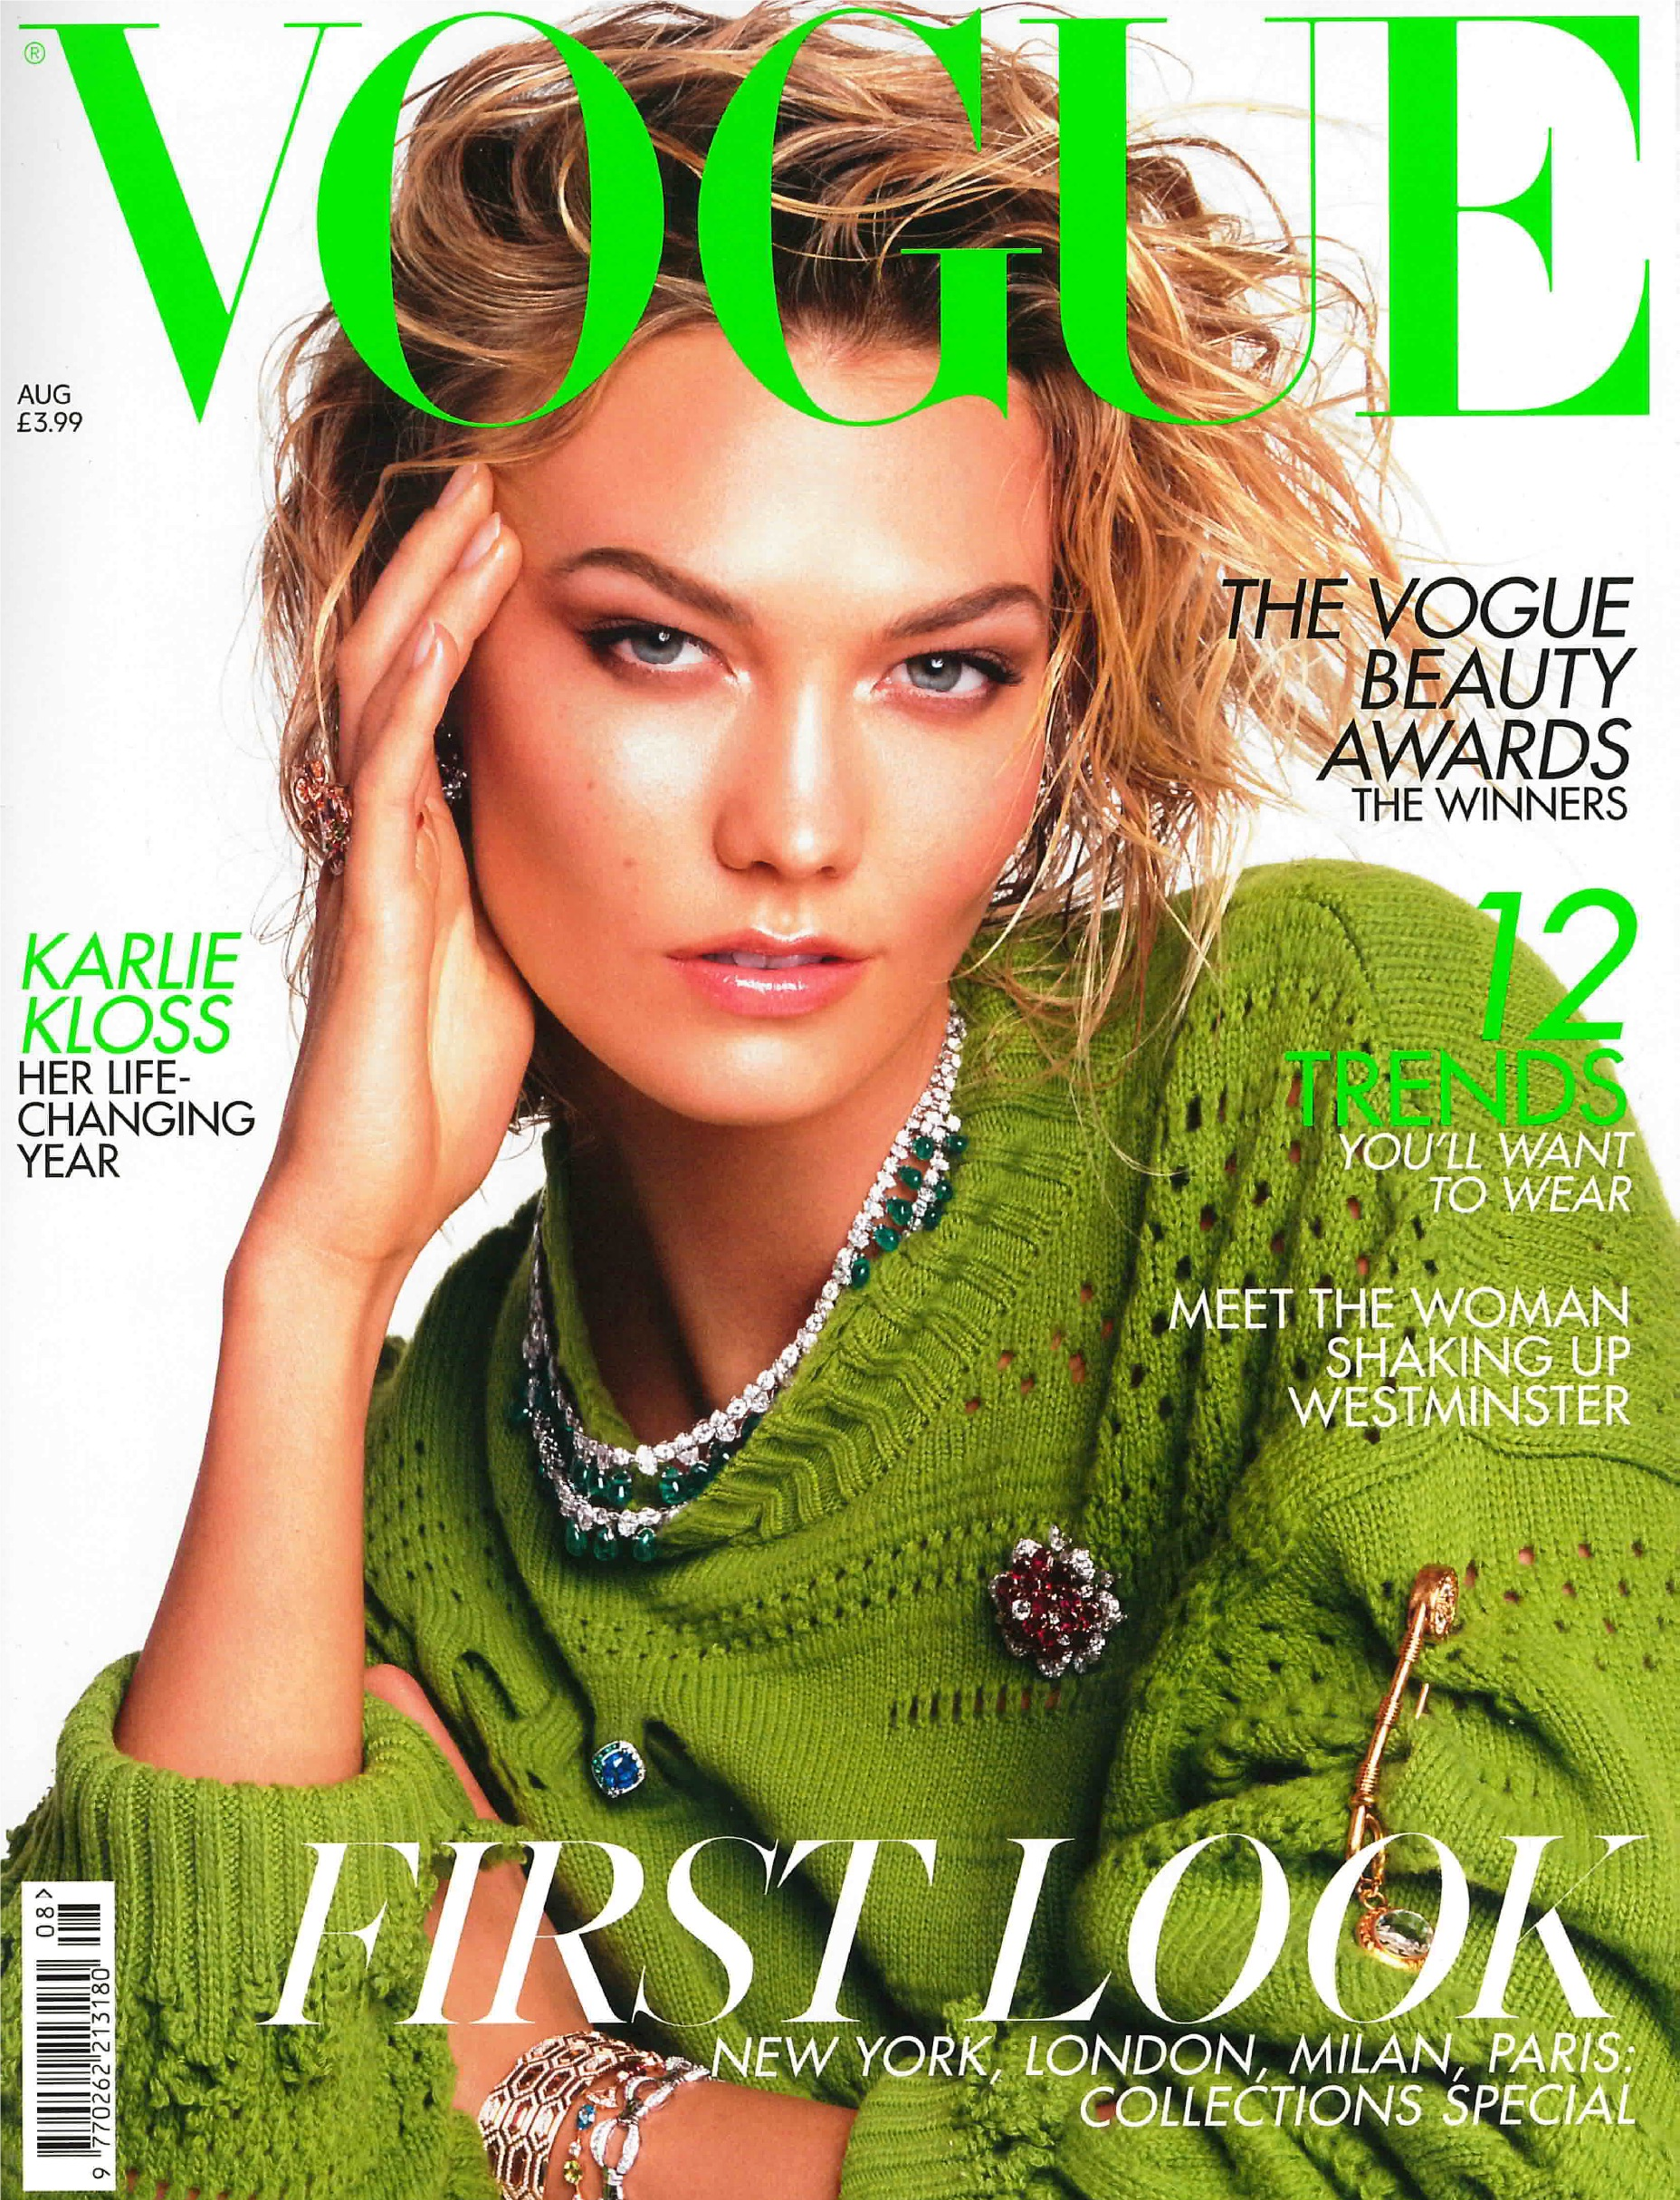 Front cover of British vogue magazine 2019 featuring Karlie Kloss